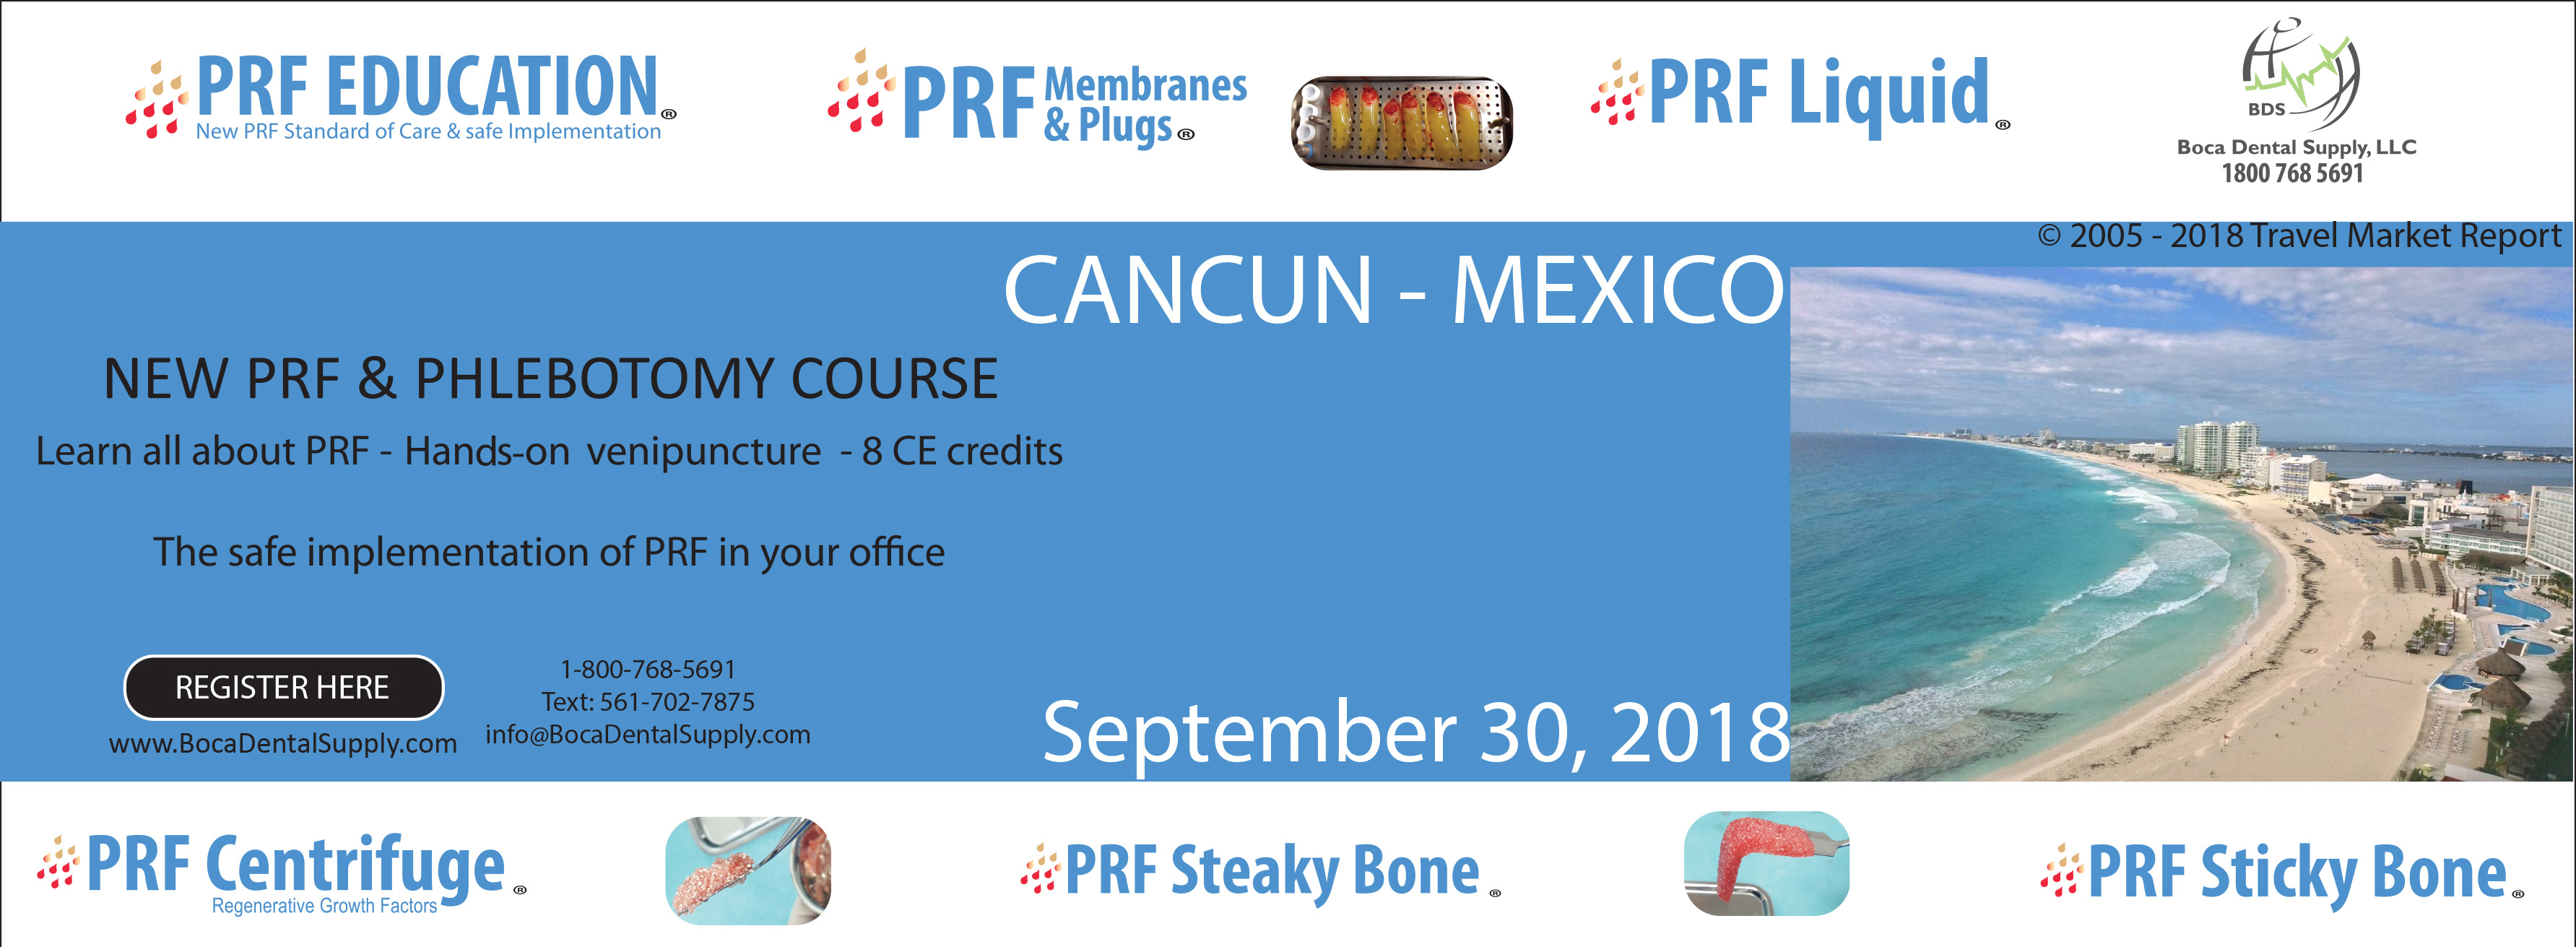 prf-course-cancun-sept.-2018.jpg